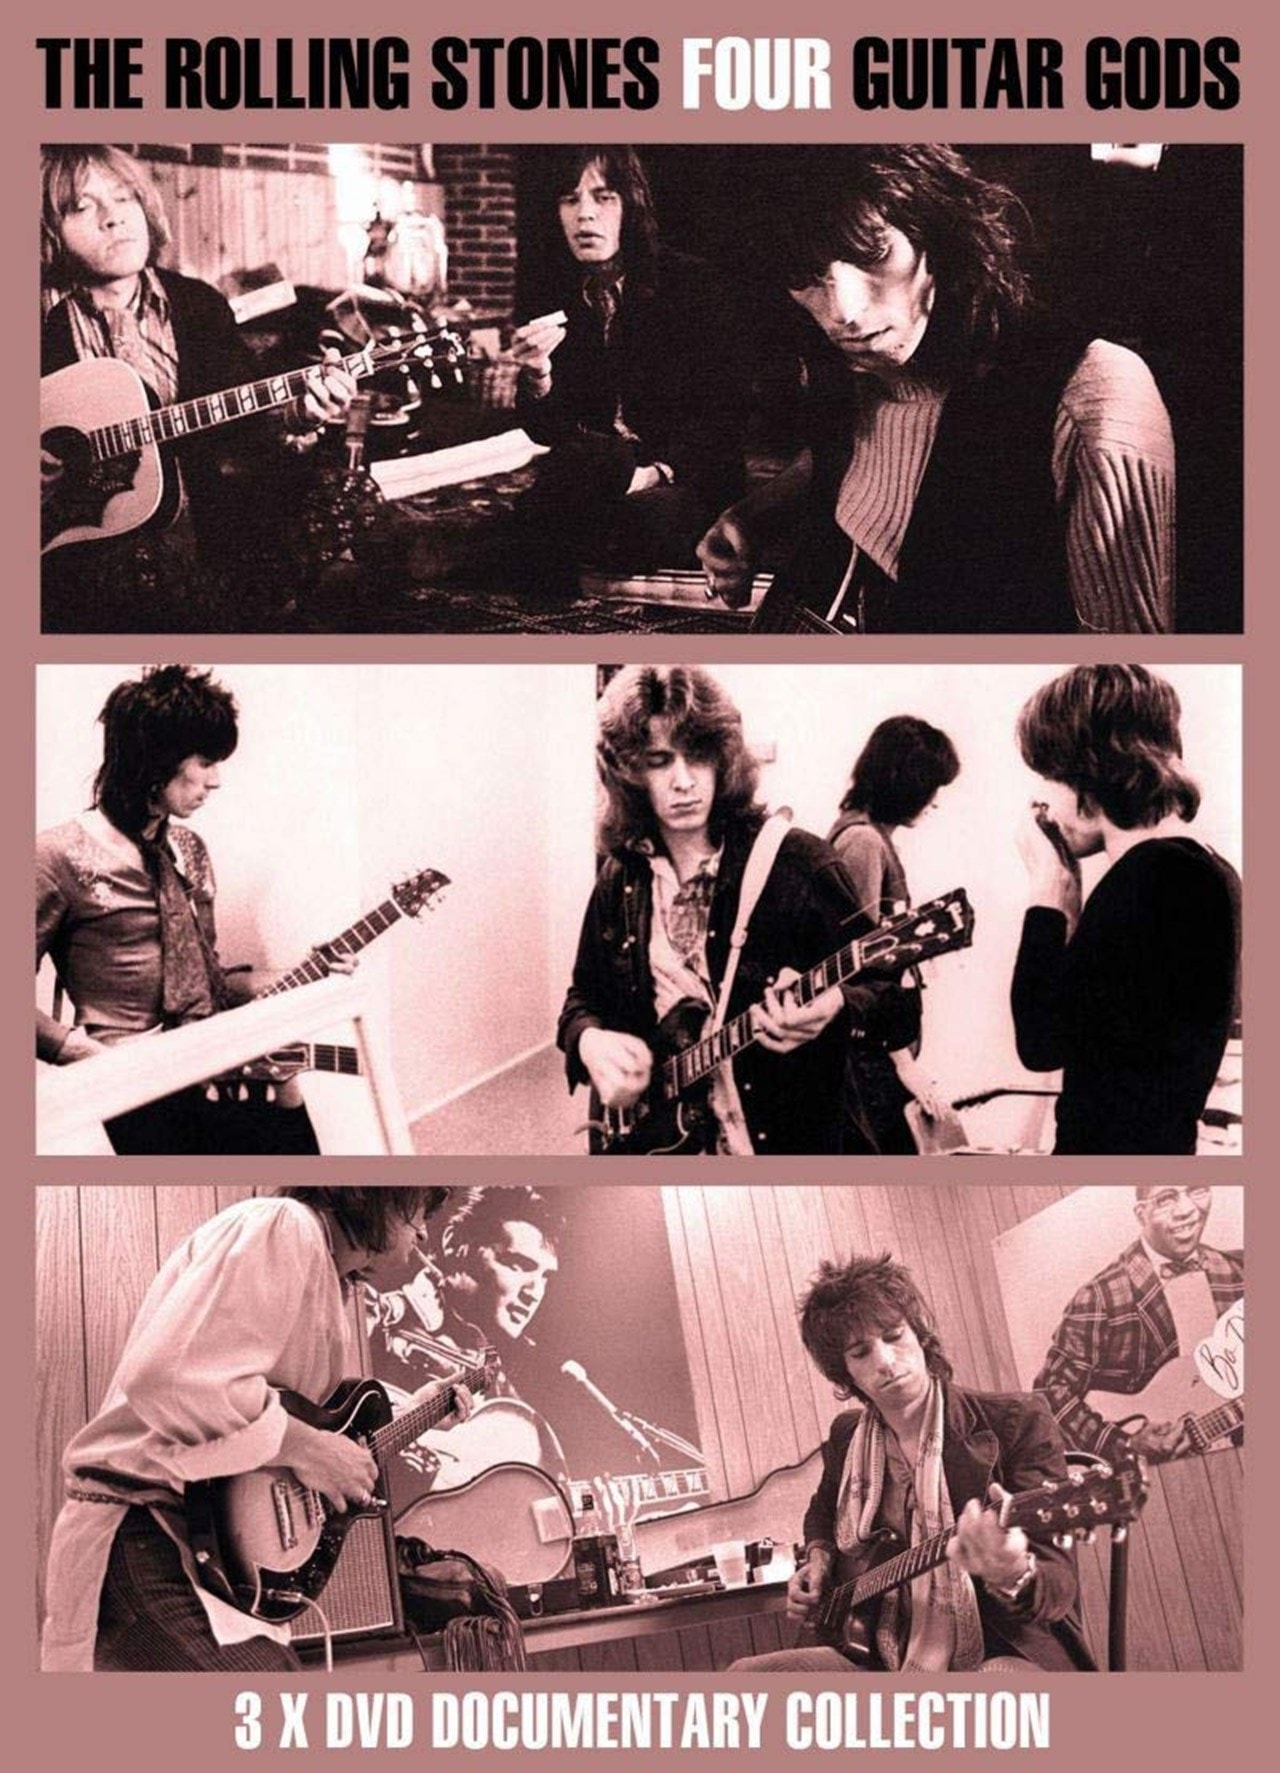 The Rolling Stones: Four Guitar Gods - 1